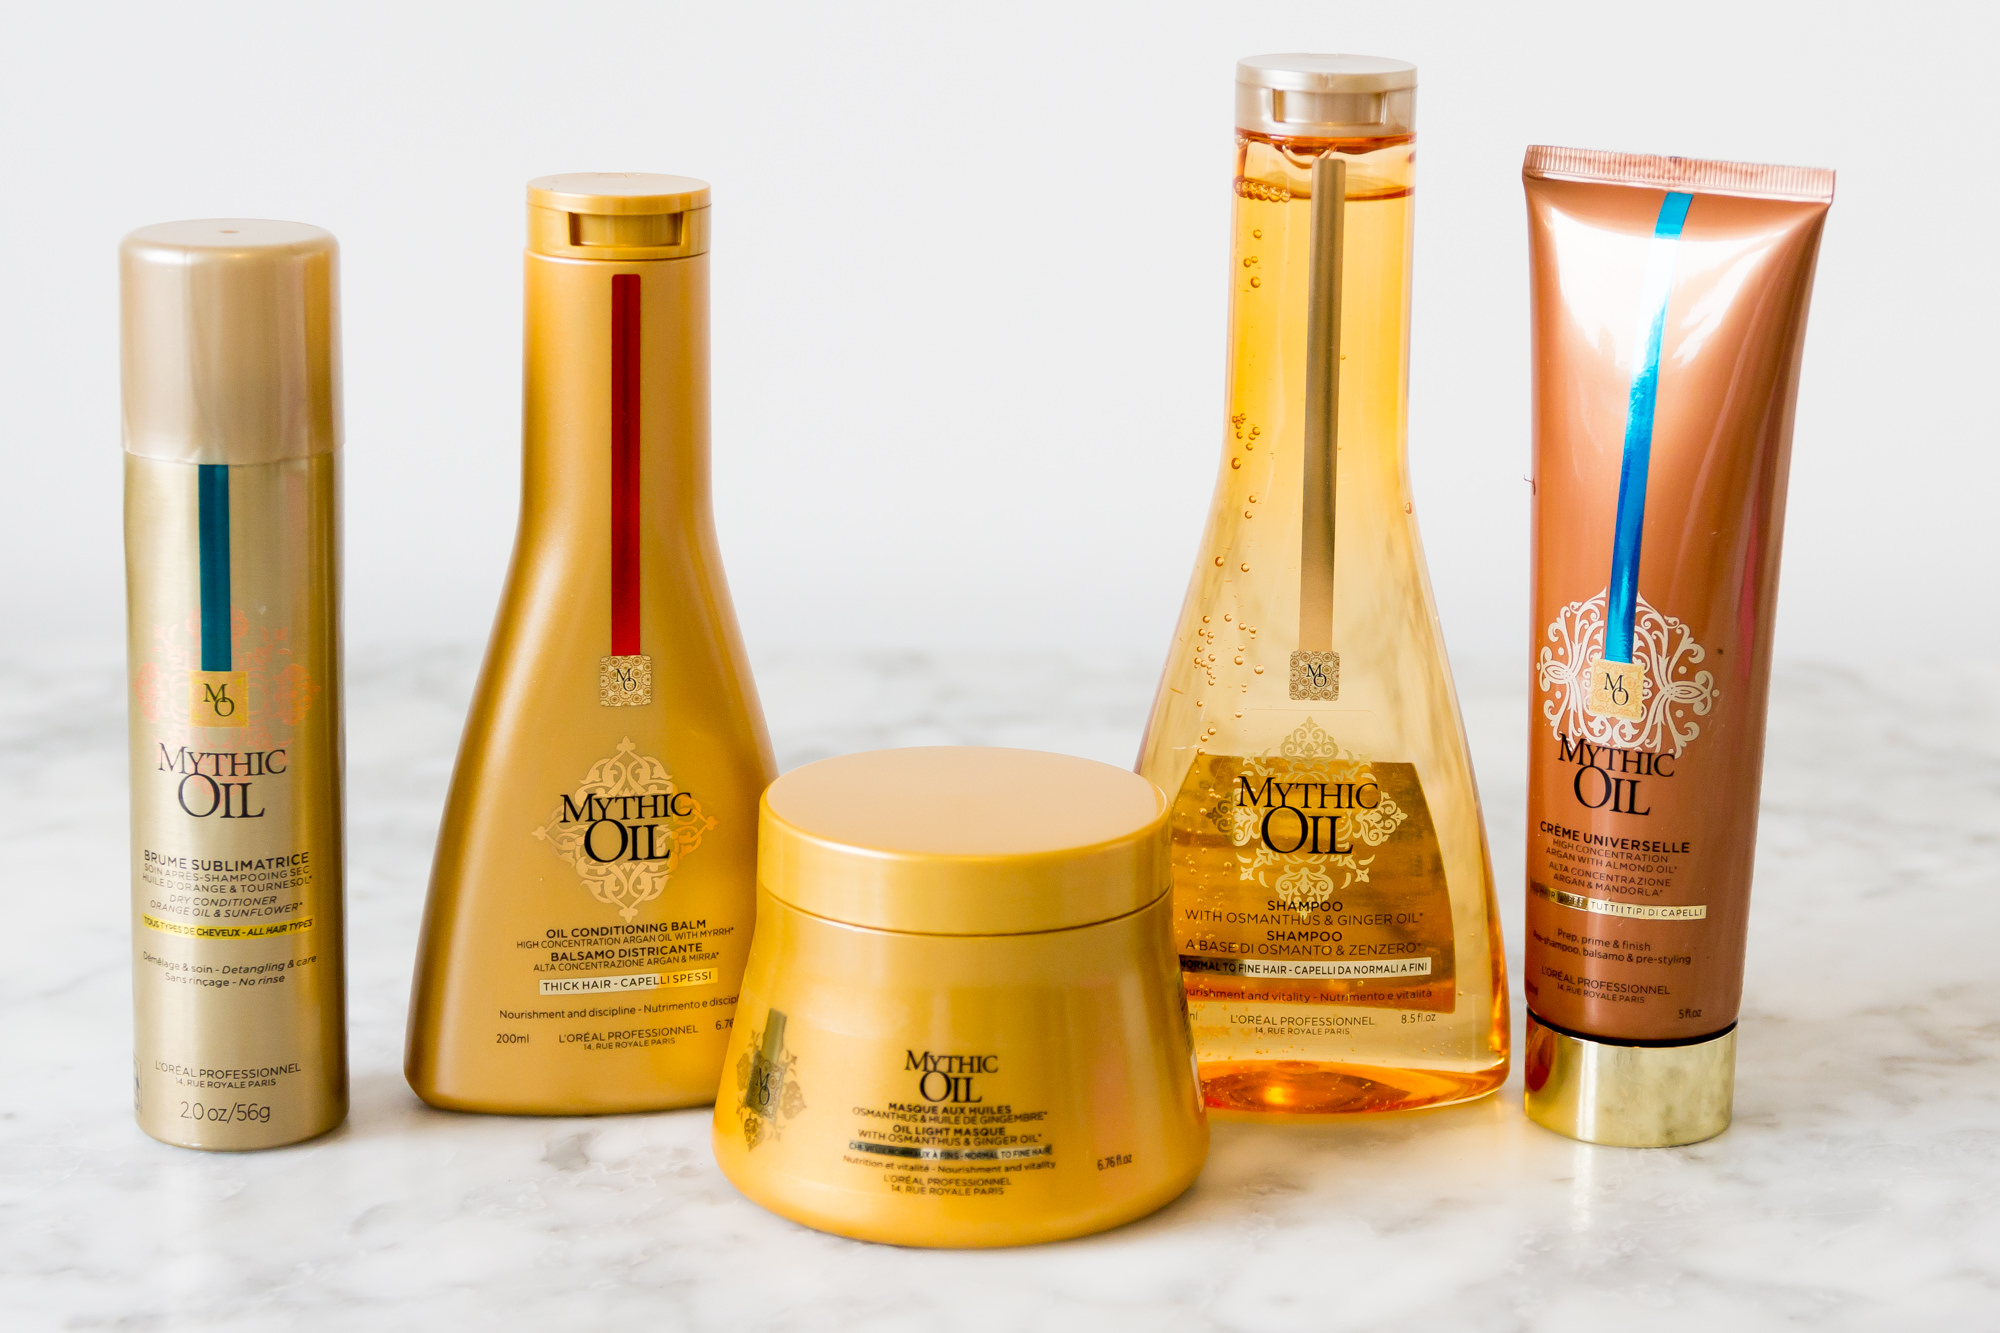 loreal-mythic-oil-2119